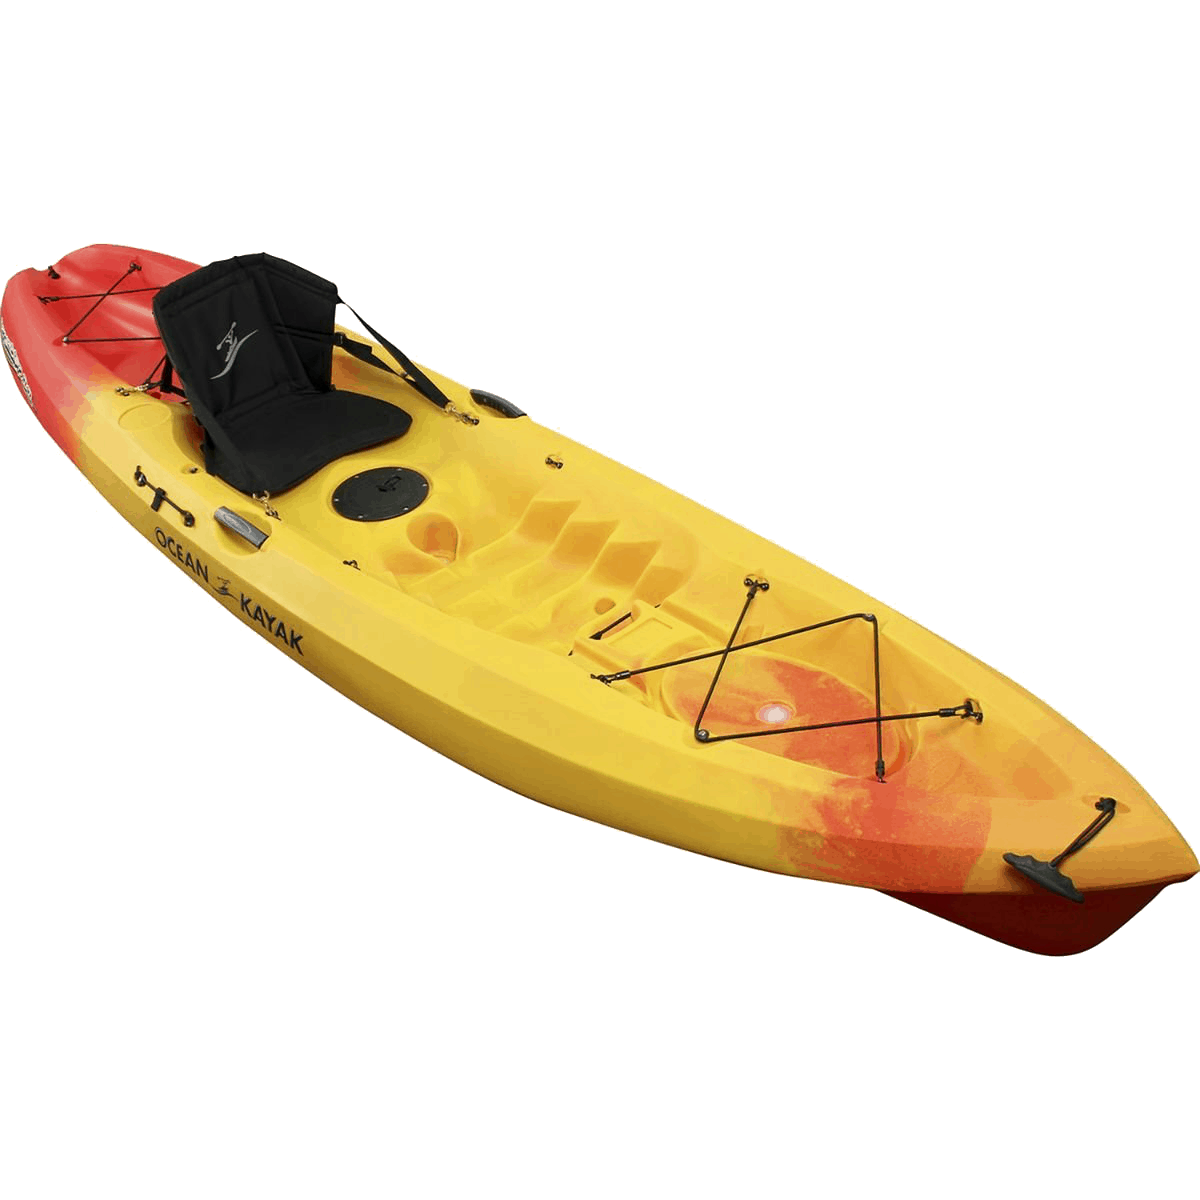 Ocean Kayak Scrambler 11 top 5 Recreational Kayaks